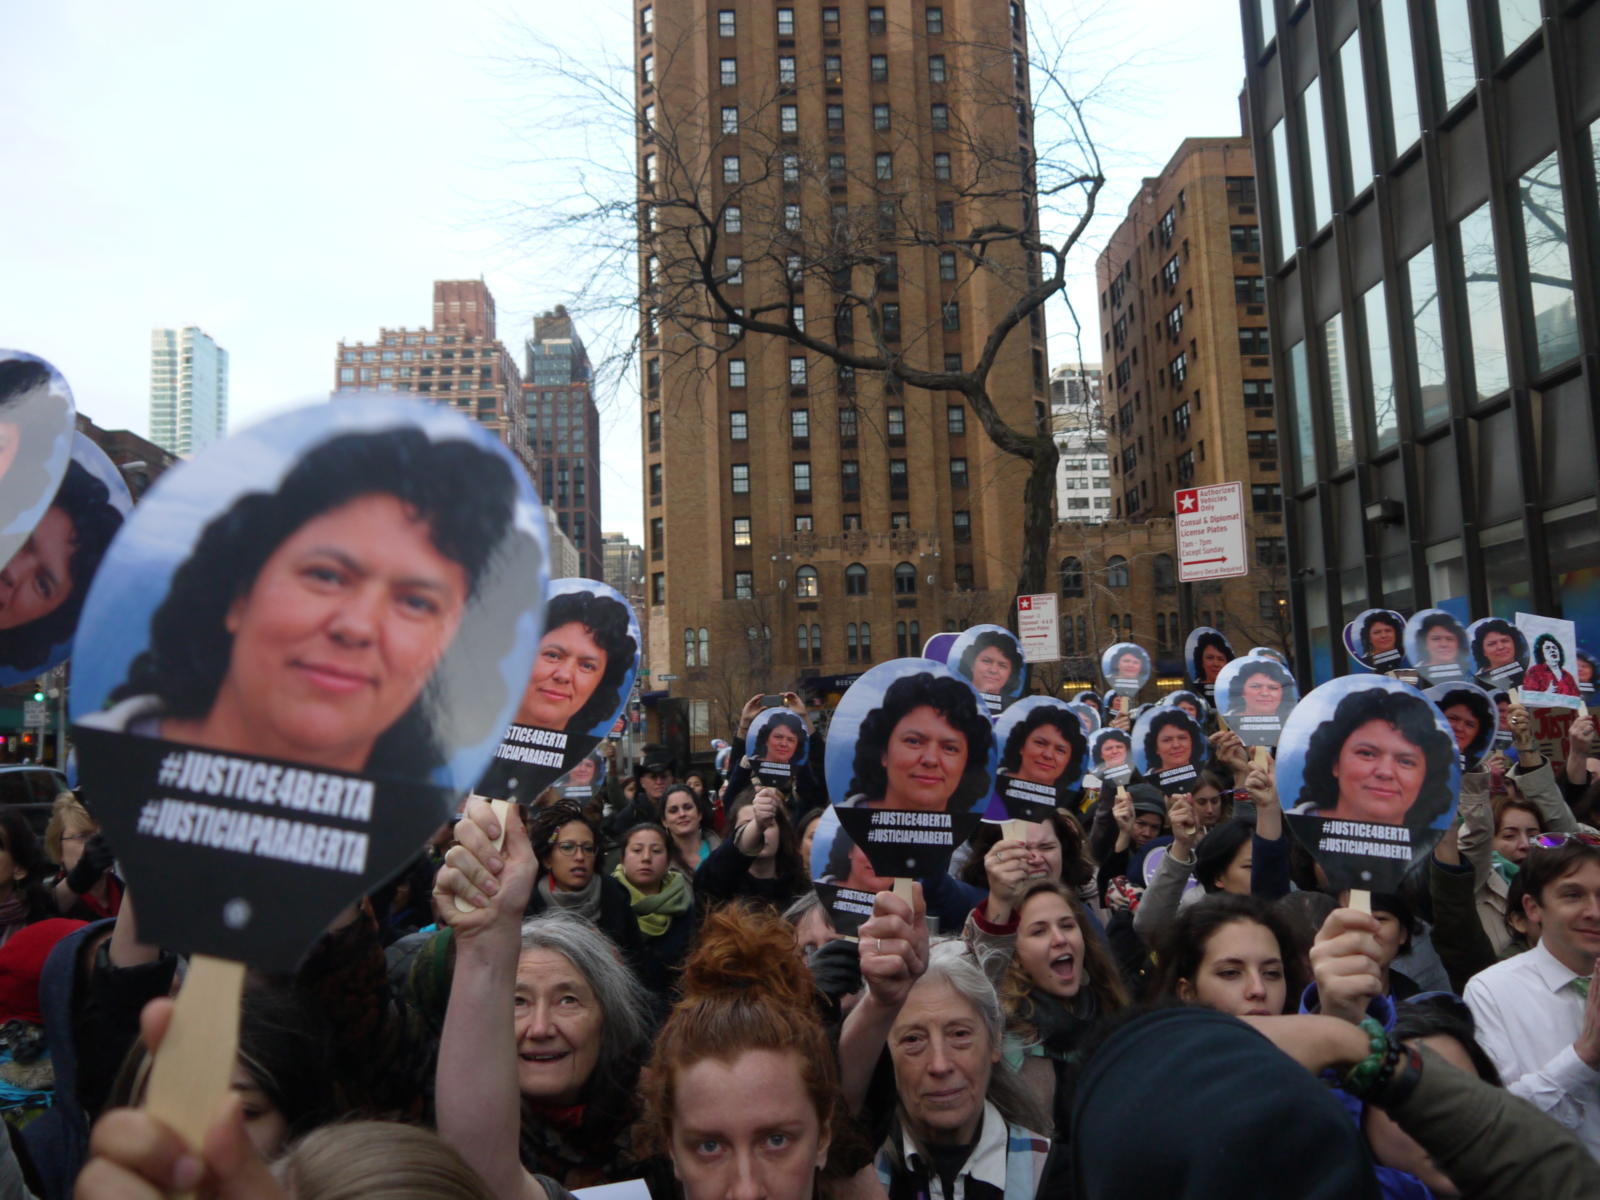 Berta Cáceres and the open wounds of Honduras